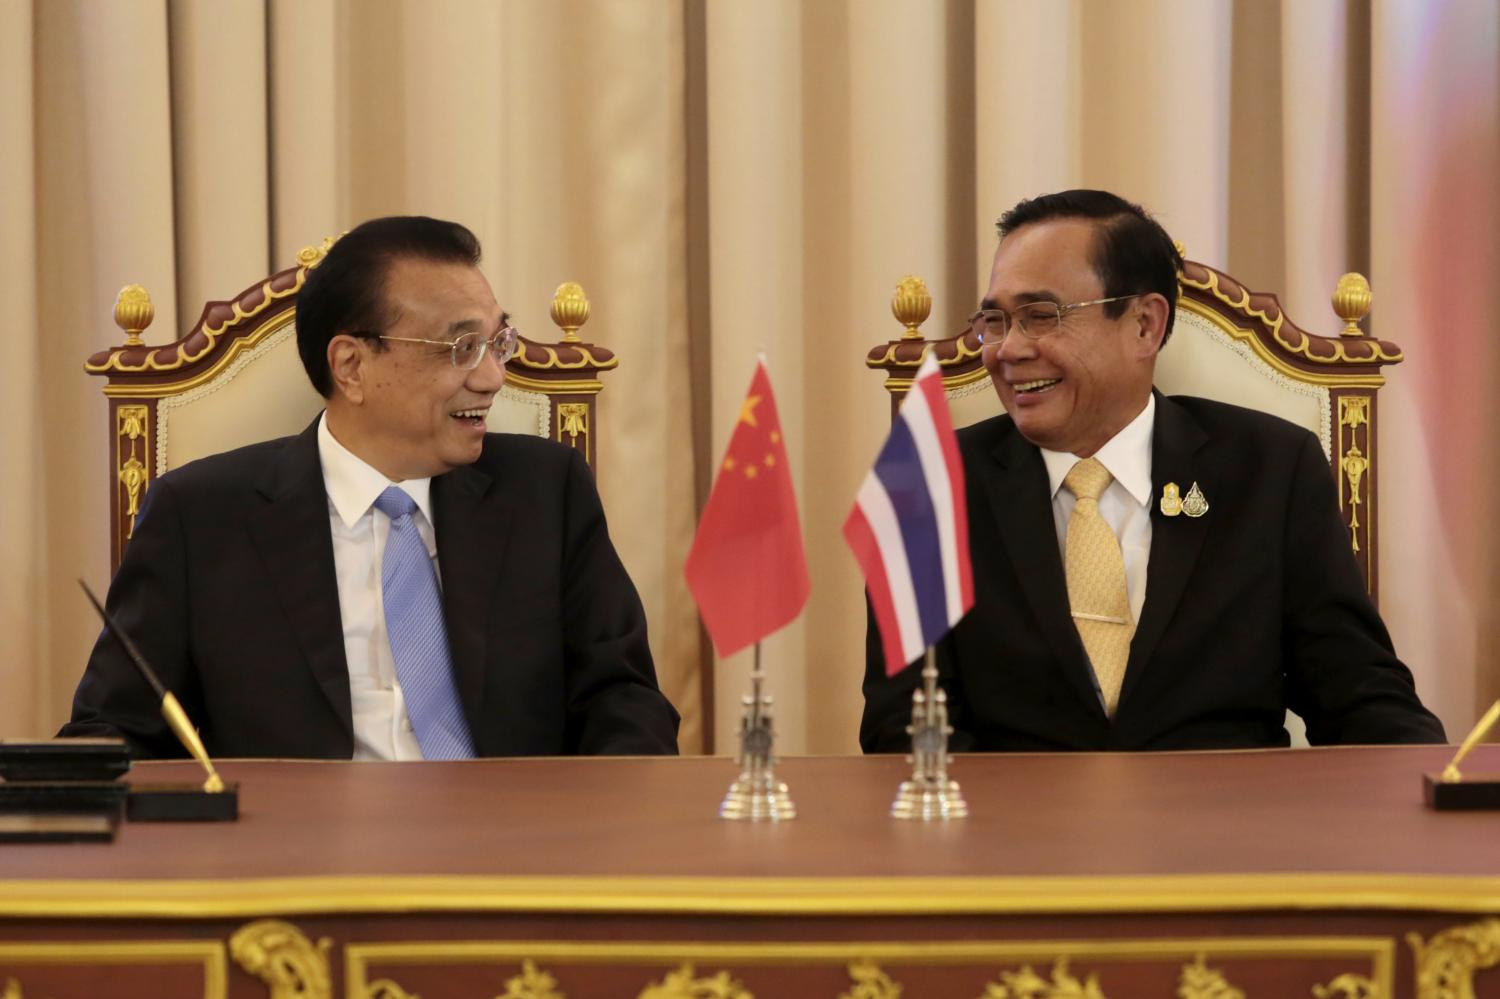 Prime Minister Prayut Chan-o-cha shares a light moment with Chinese Premier Li Keqiang as they witness the signing of three memorandums of understanding on cooperation at Government House on Tuesday.Chanat Katanyu